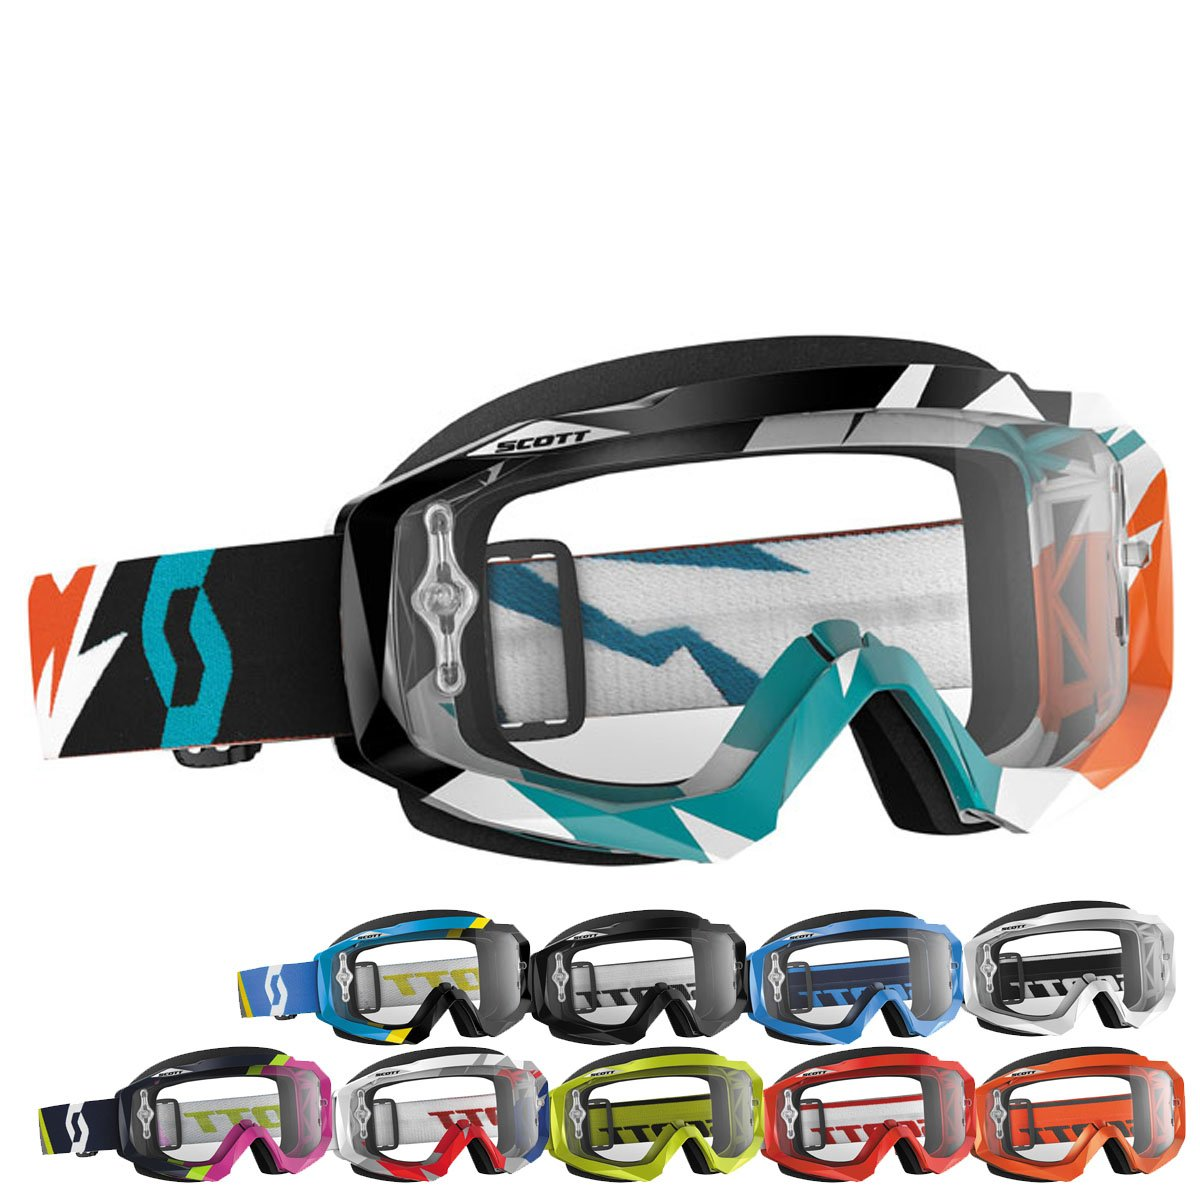 Scott Hustle Goggles - Green/Clear Works / One Size by Scott Sports (Image #1)